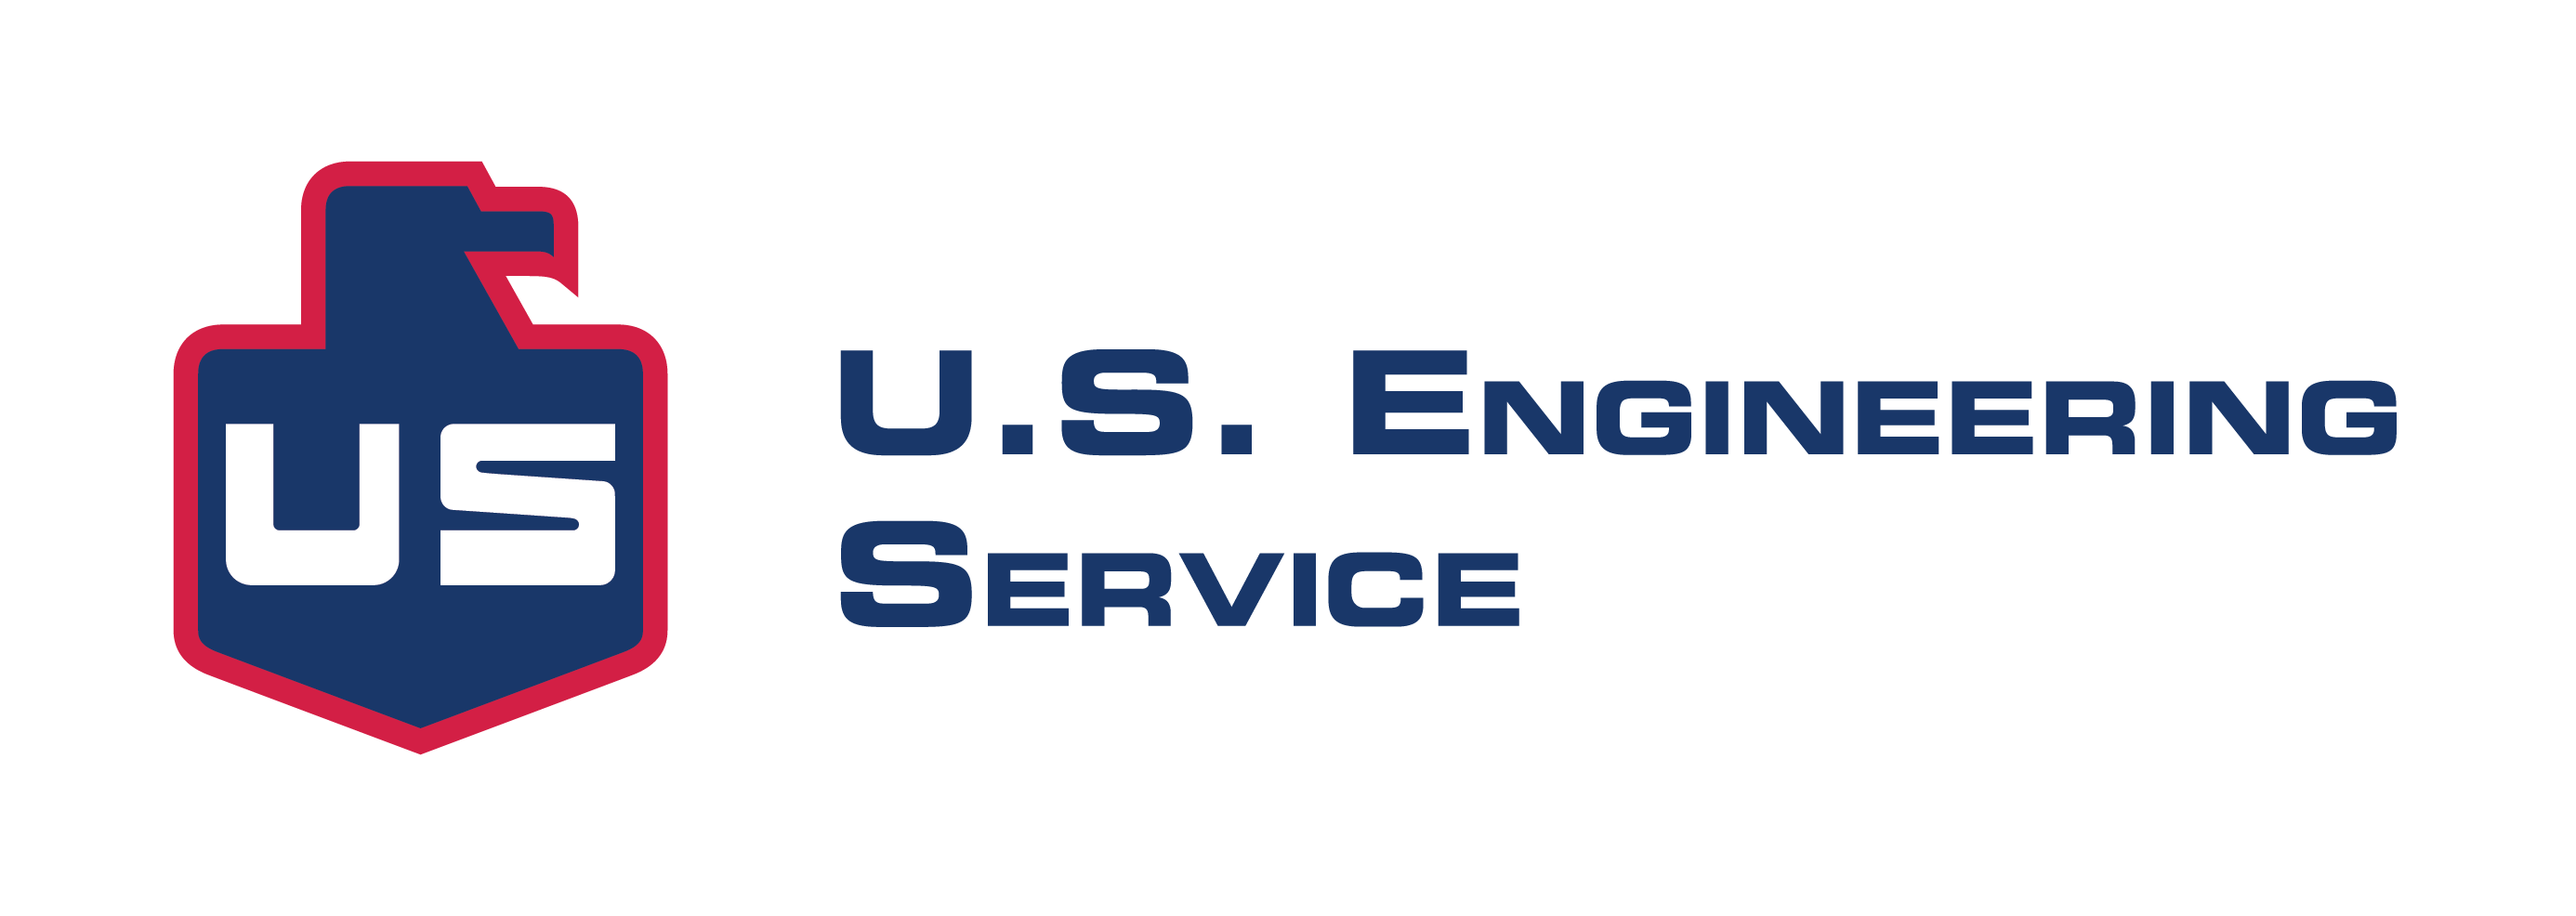 U.S. Engineering